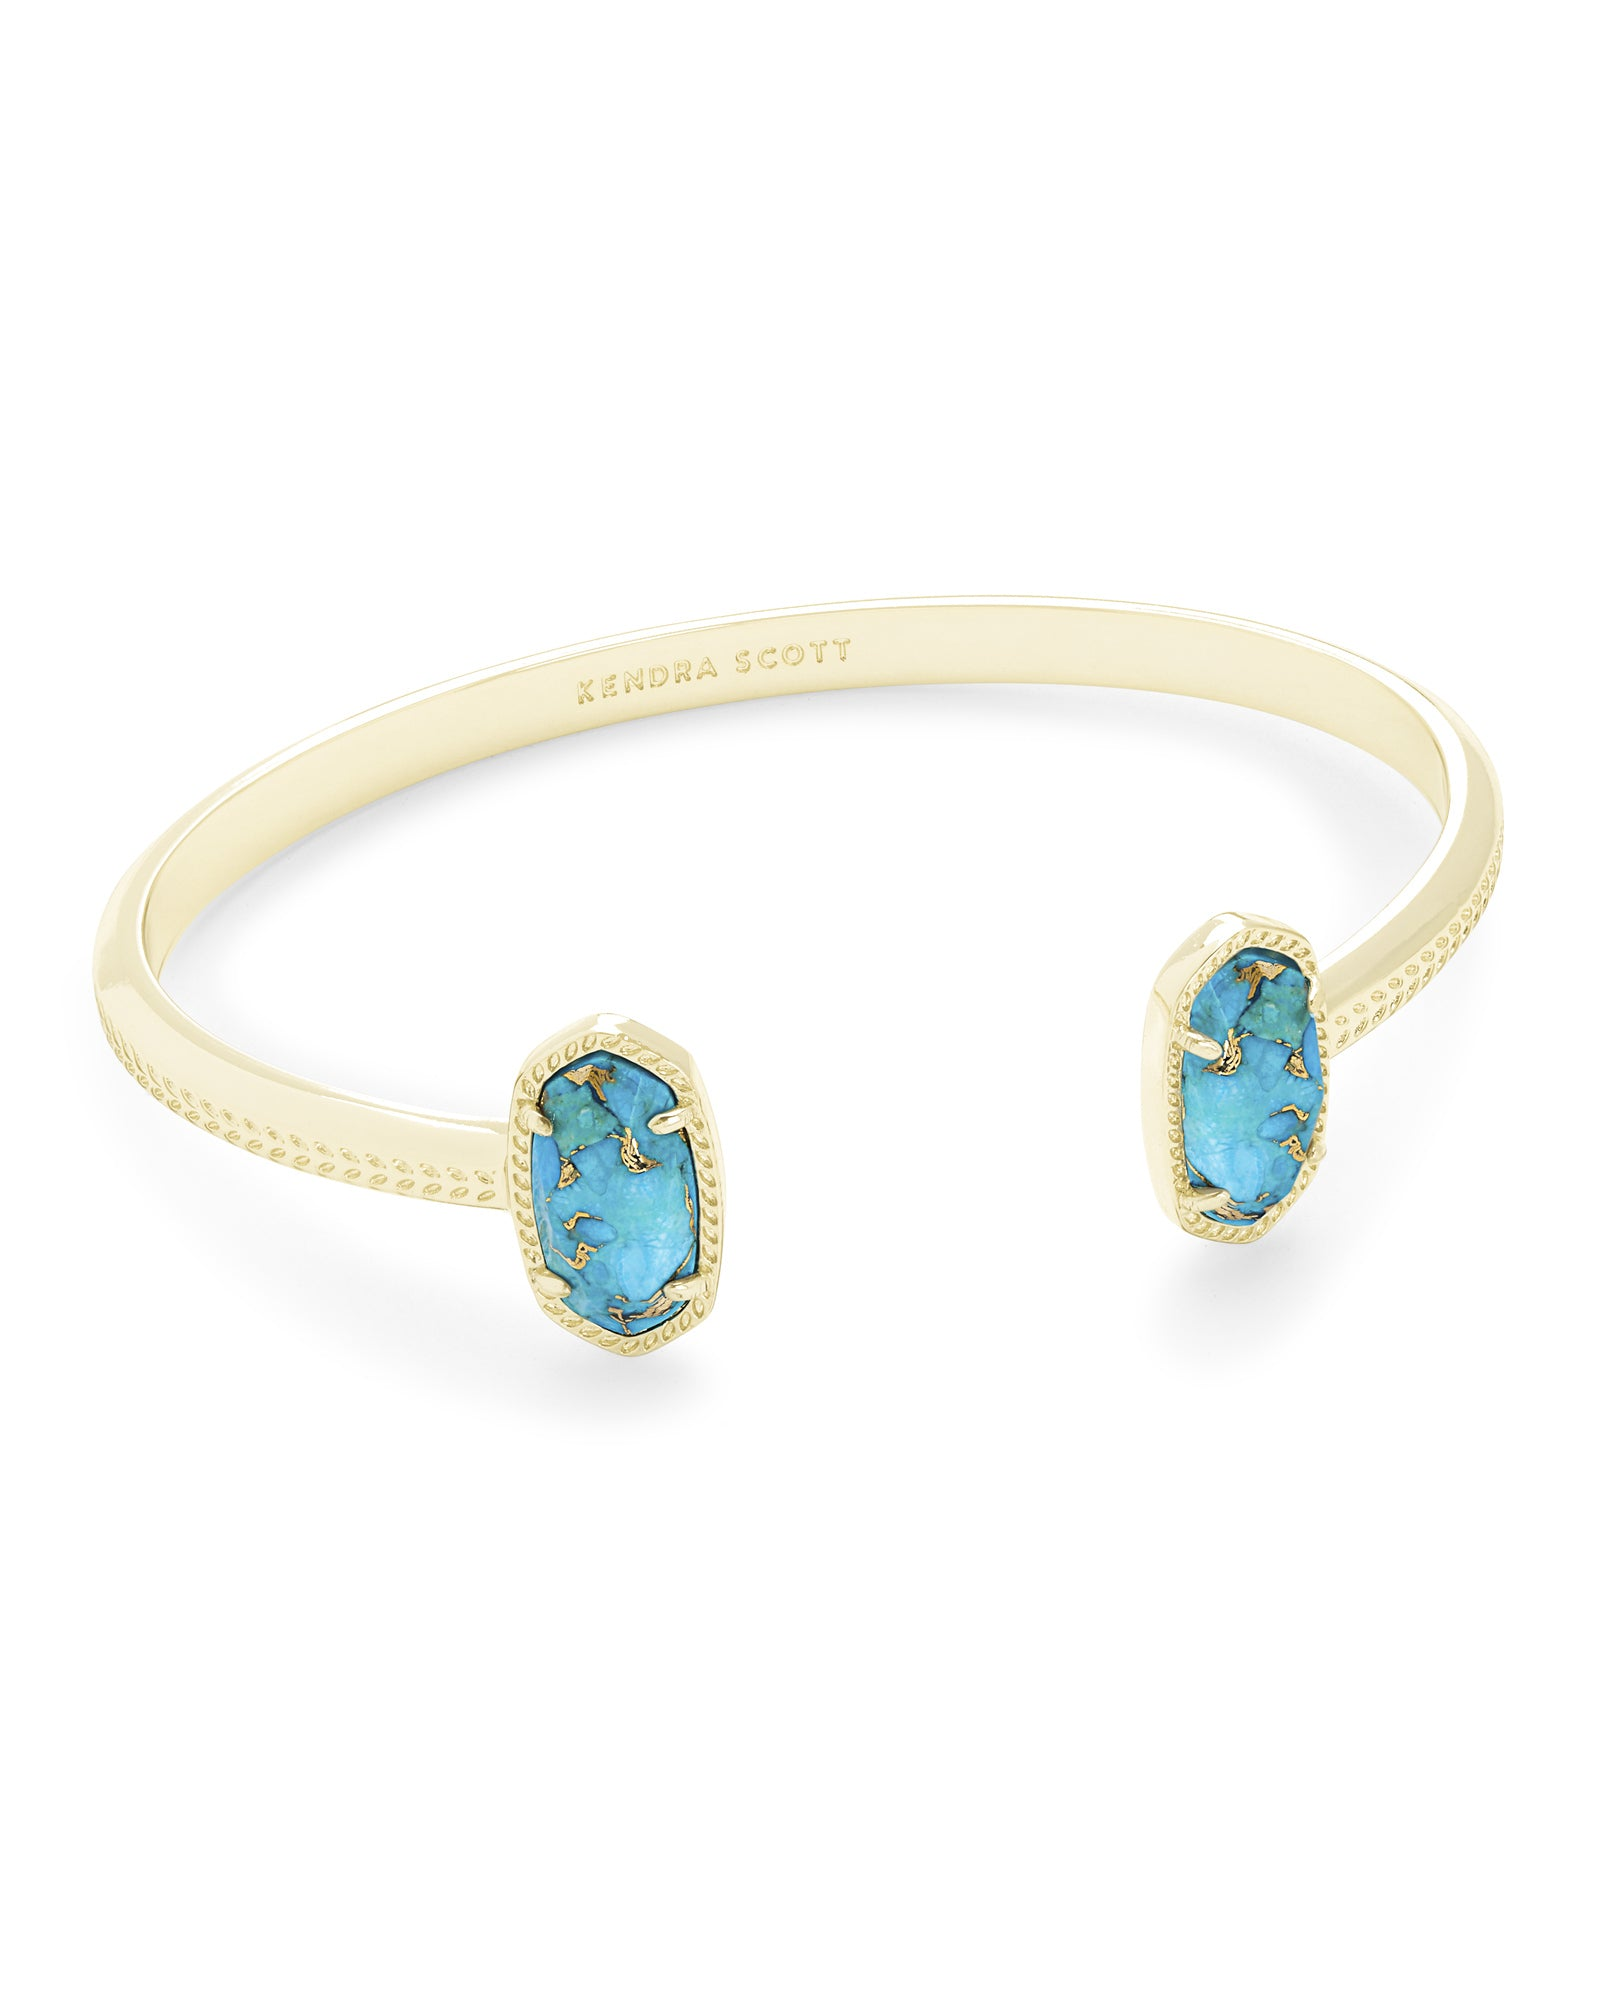 Kendra Scott Elton Bracelet - Showroom56